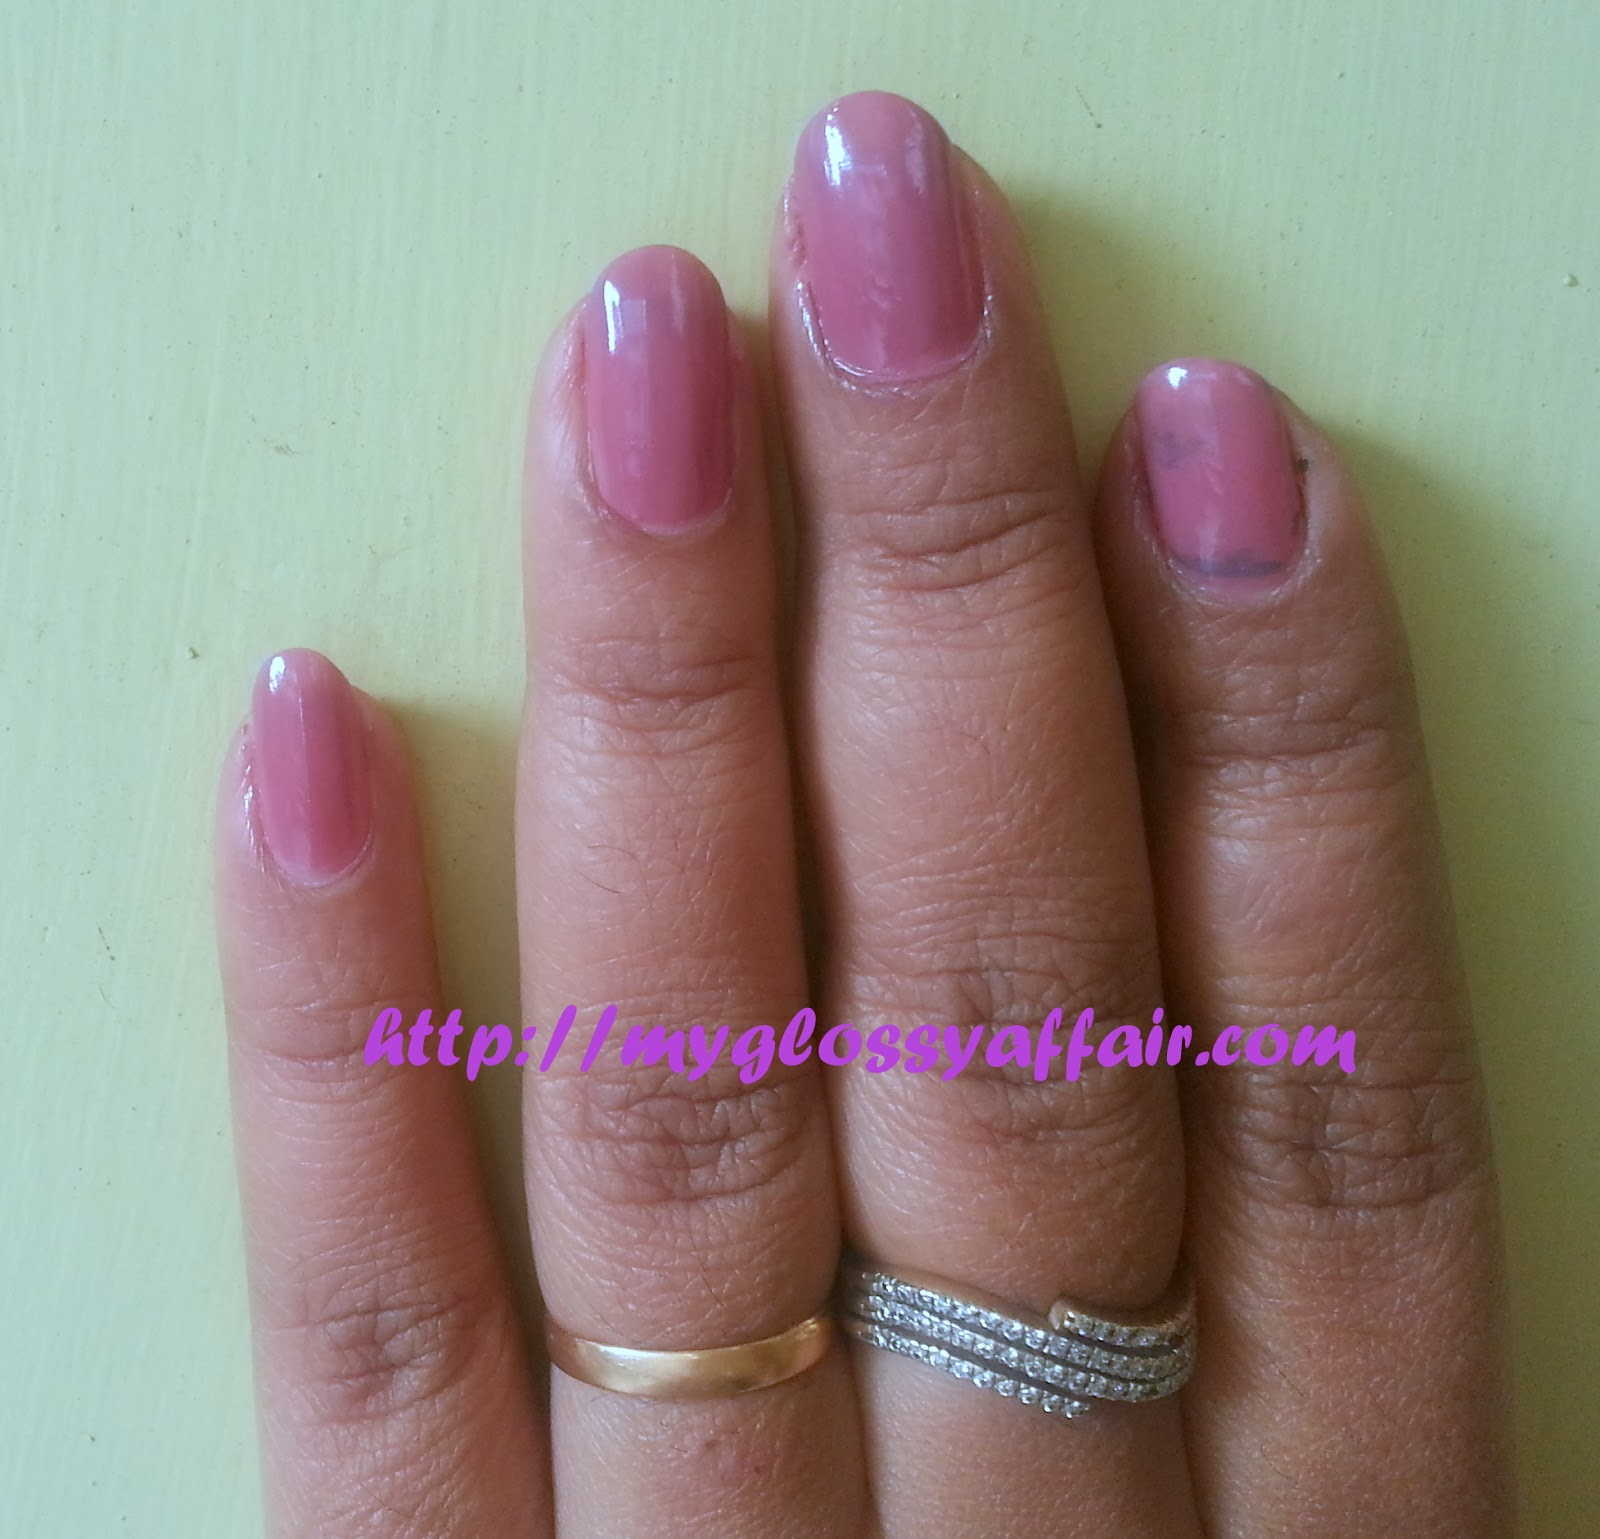 LÓreal Paris Pro Manicure Nail Polish  – Mauvie Star 340 Review, Pictures and Swatches